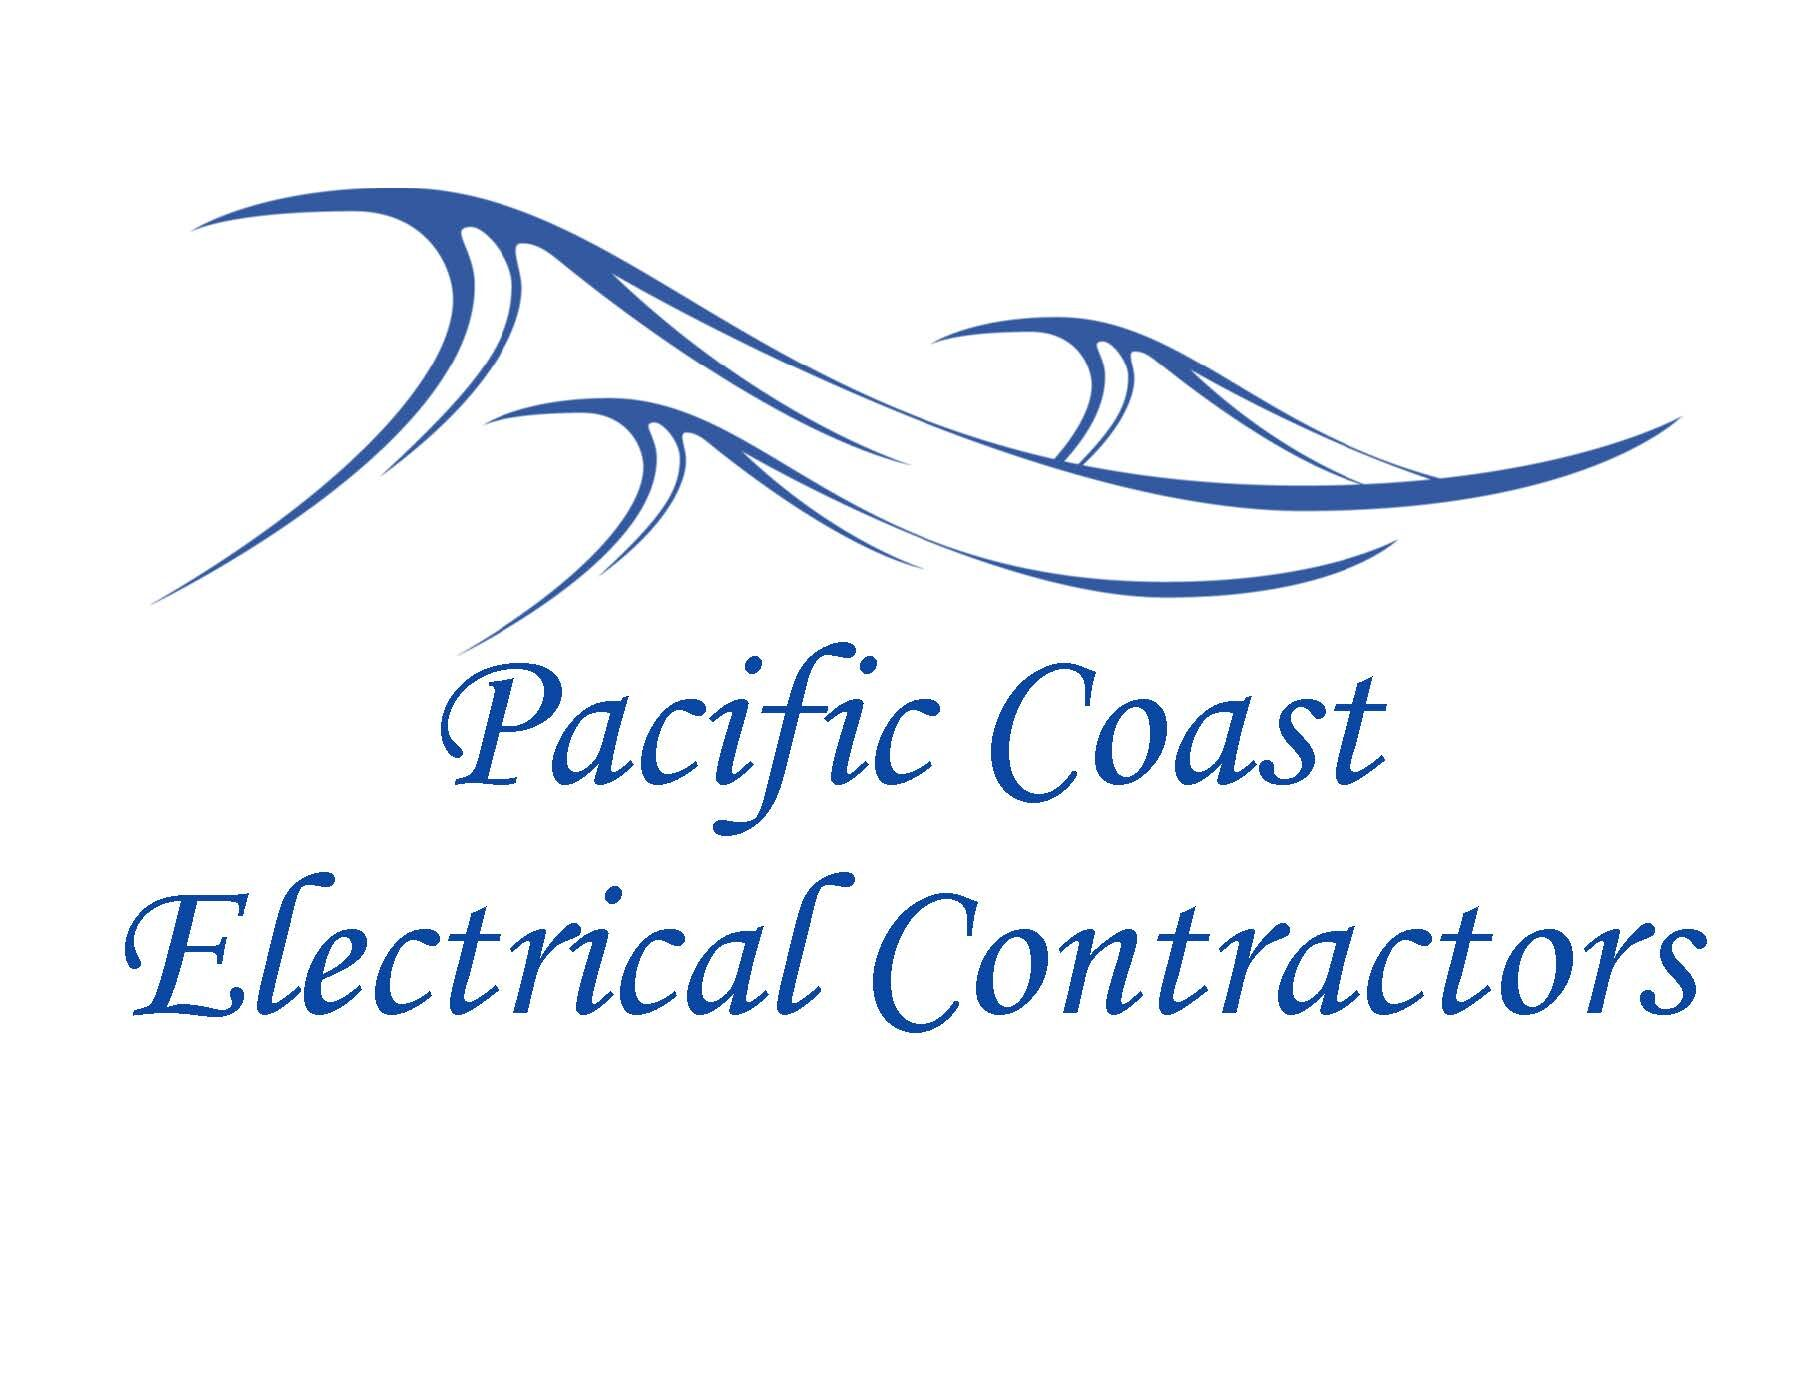 Pacific Coast Electrical Contractors